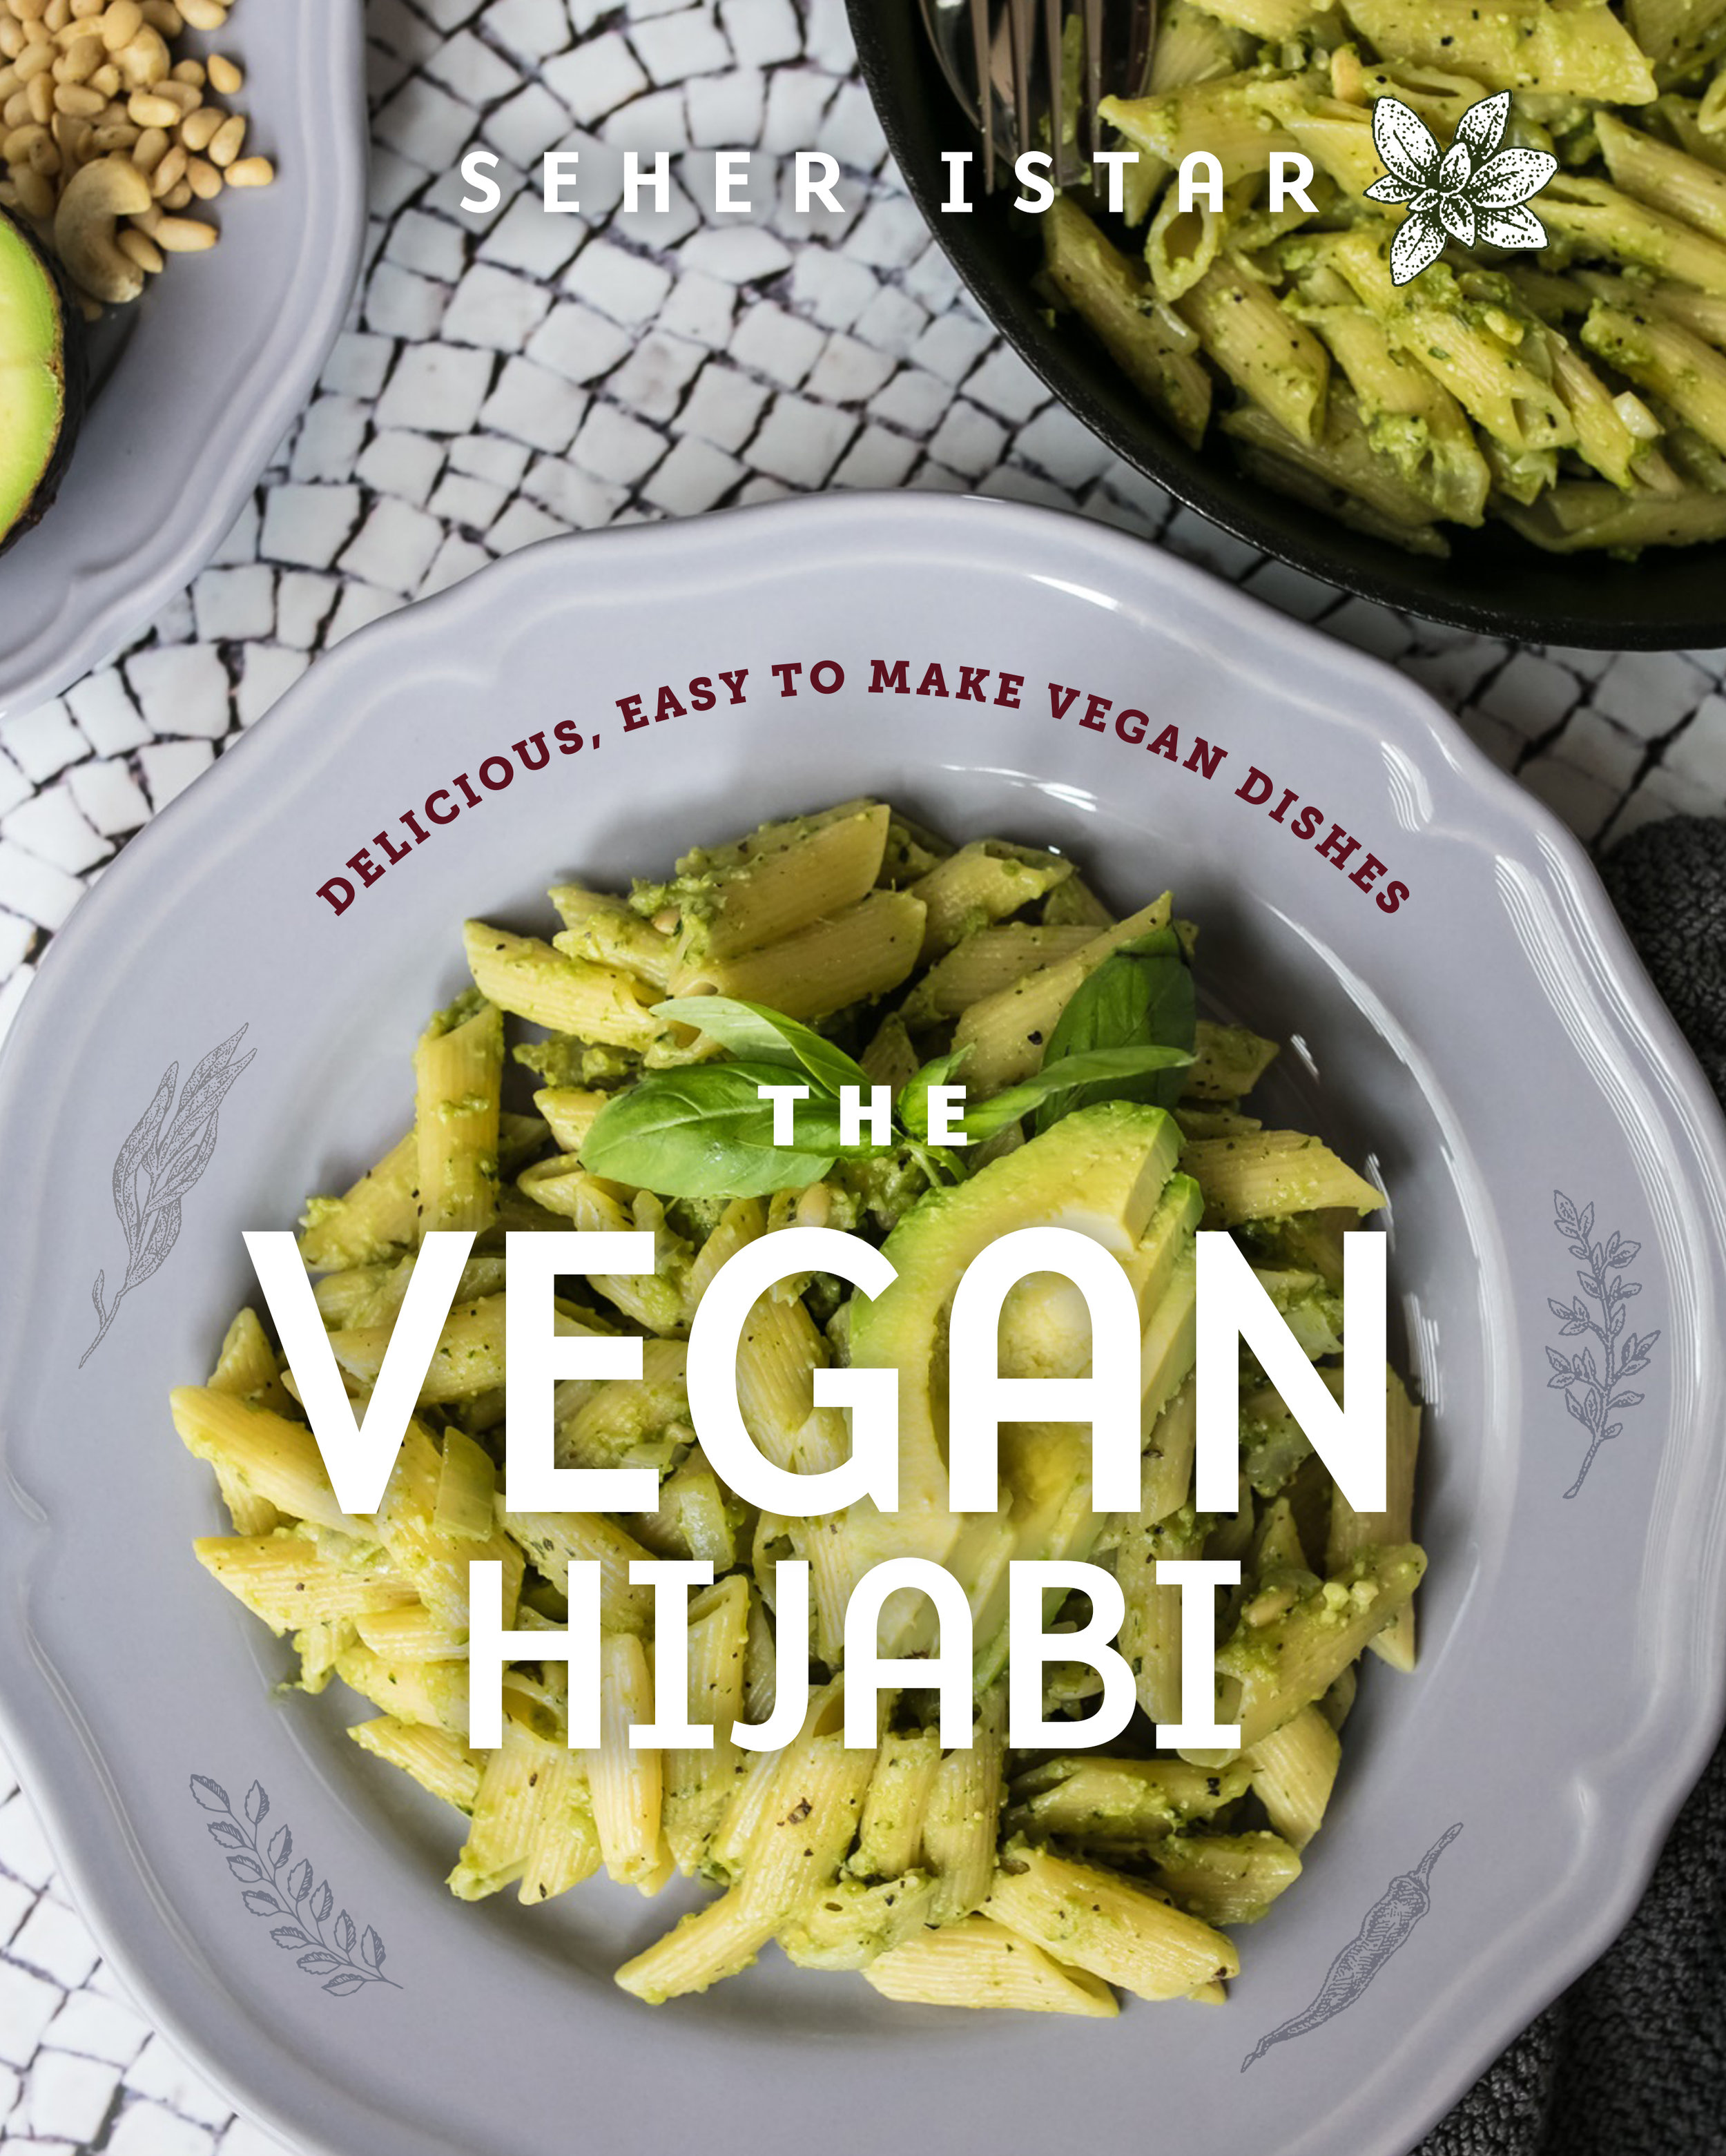 Vegan Hijabi cover idea.jpg